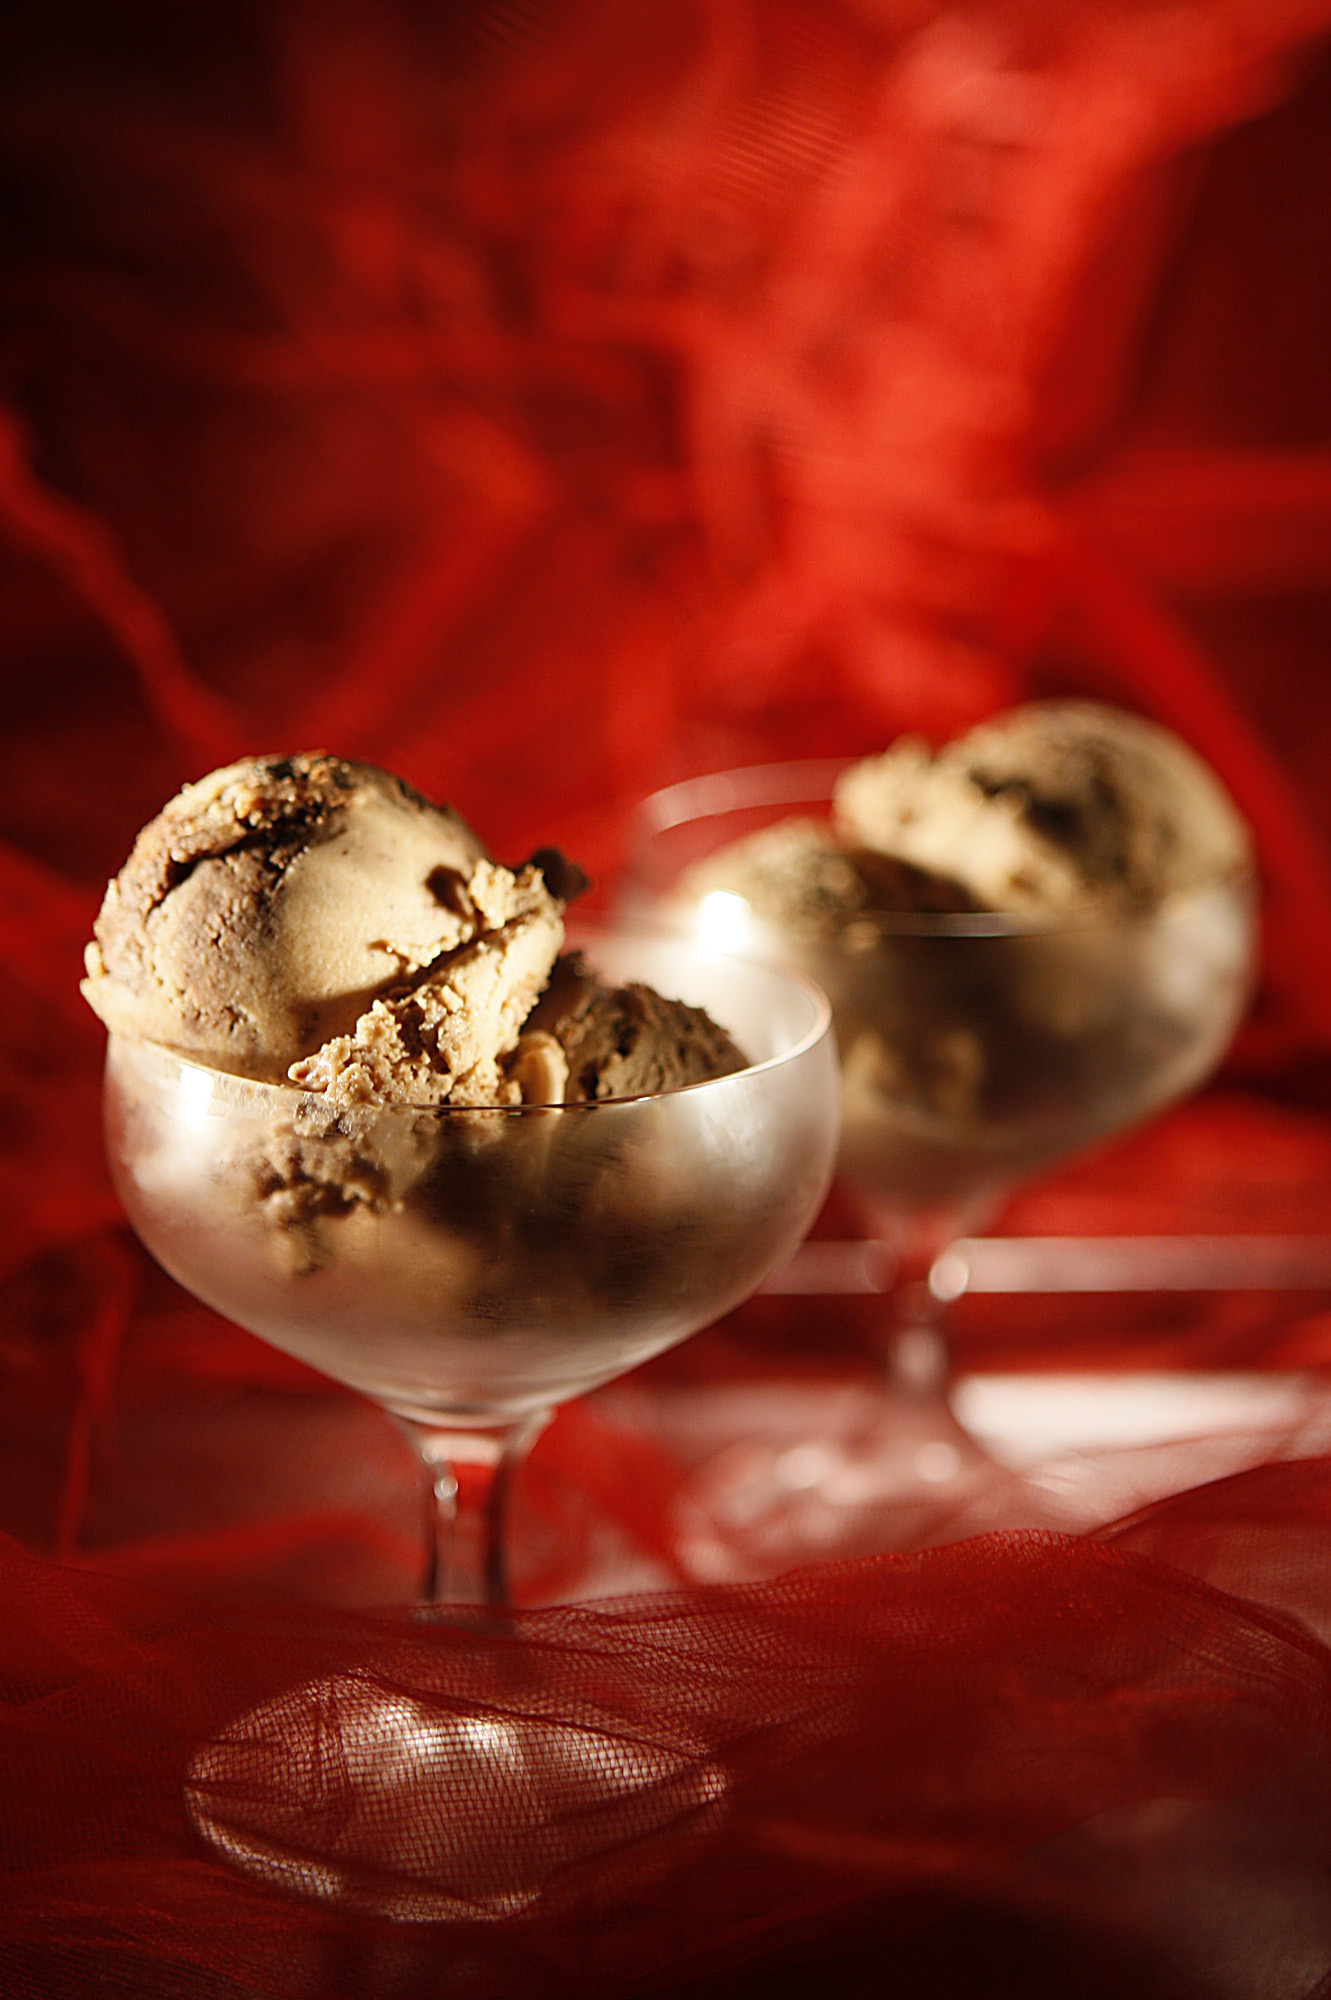 Chocolate hazelnut-swirl ice cream